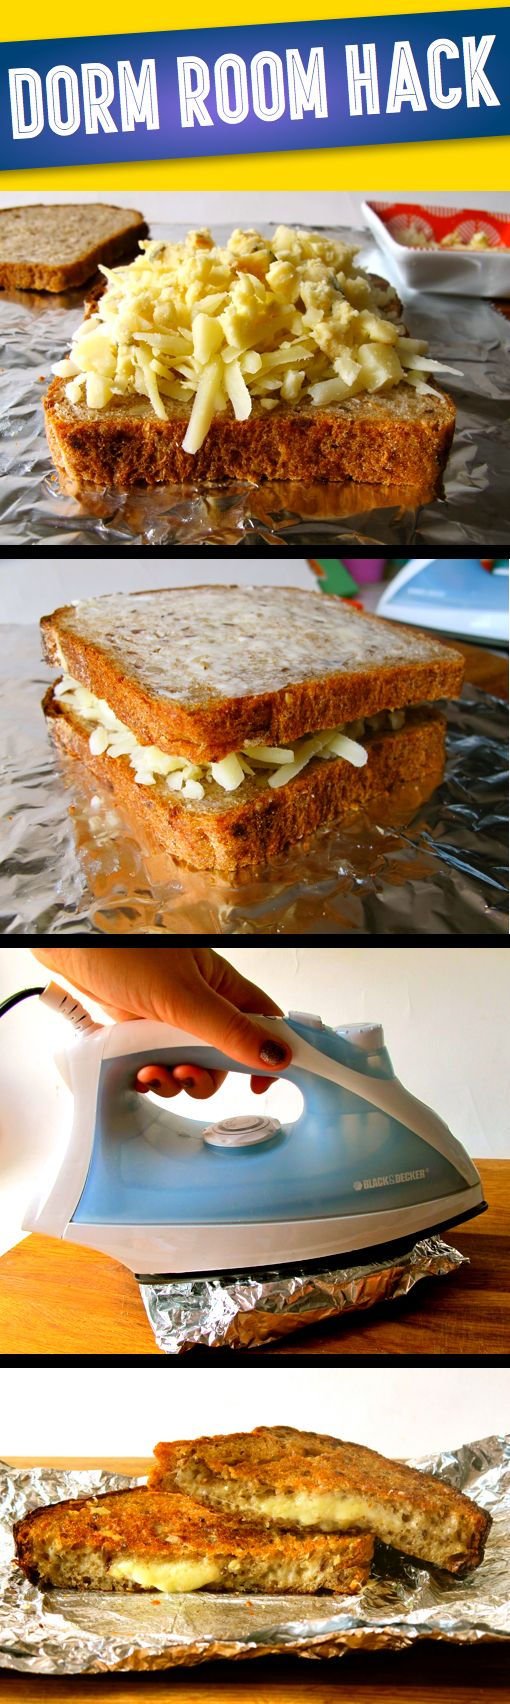 All You Need For A Delicious Meal Is Some Aluminum And An Iron! Ultimate college cooking hack!